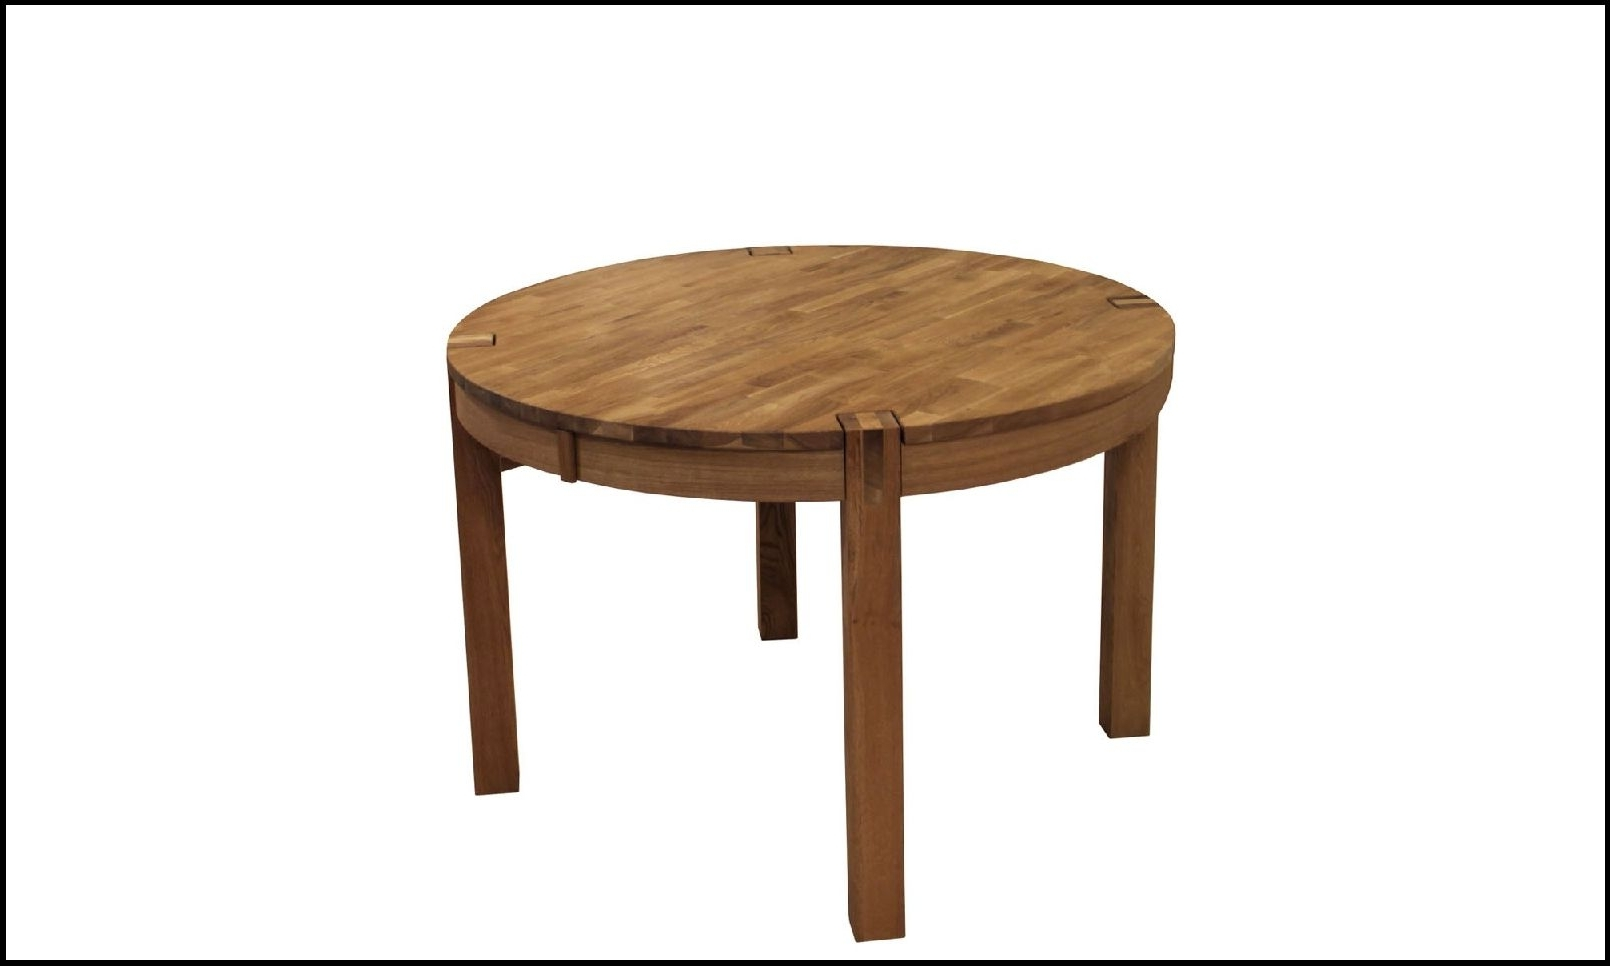 Charming Extending Round Dining Table Go Modern Furniture With Round For Most Current Extendable Round Dining Tables (View 5 of 25)